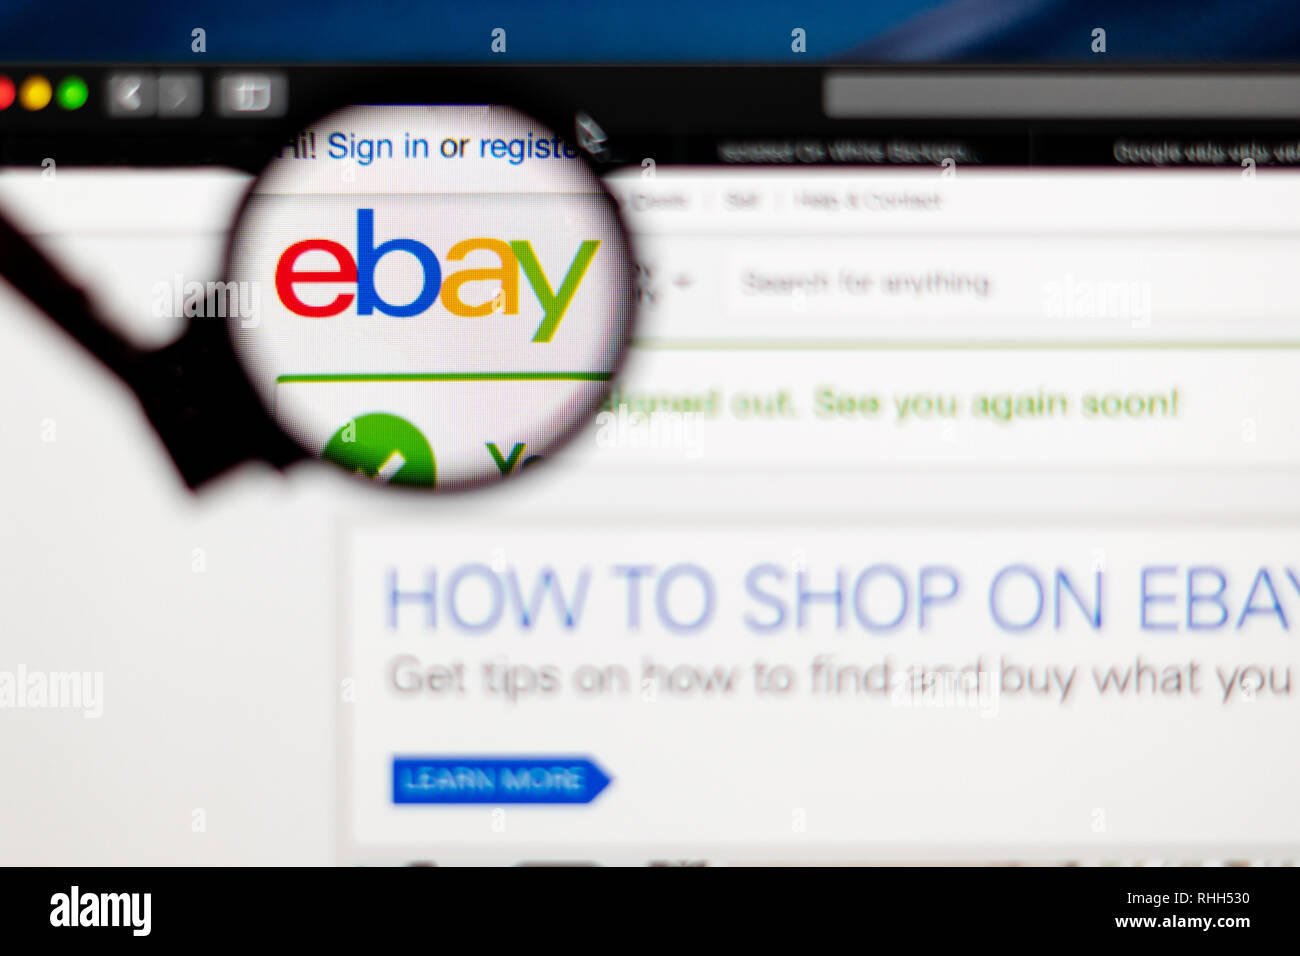 eBay website homepage. eBay company logo visible  through a magnifying glass. - Stock Image